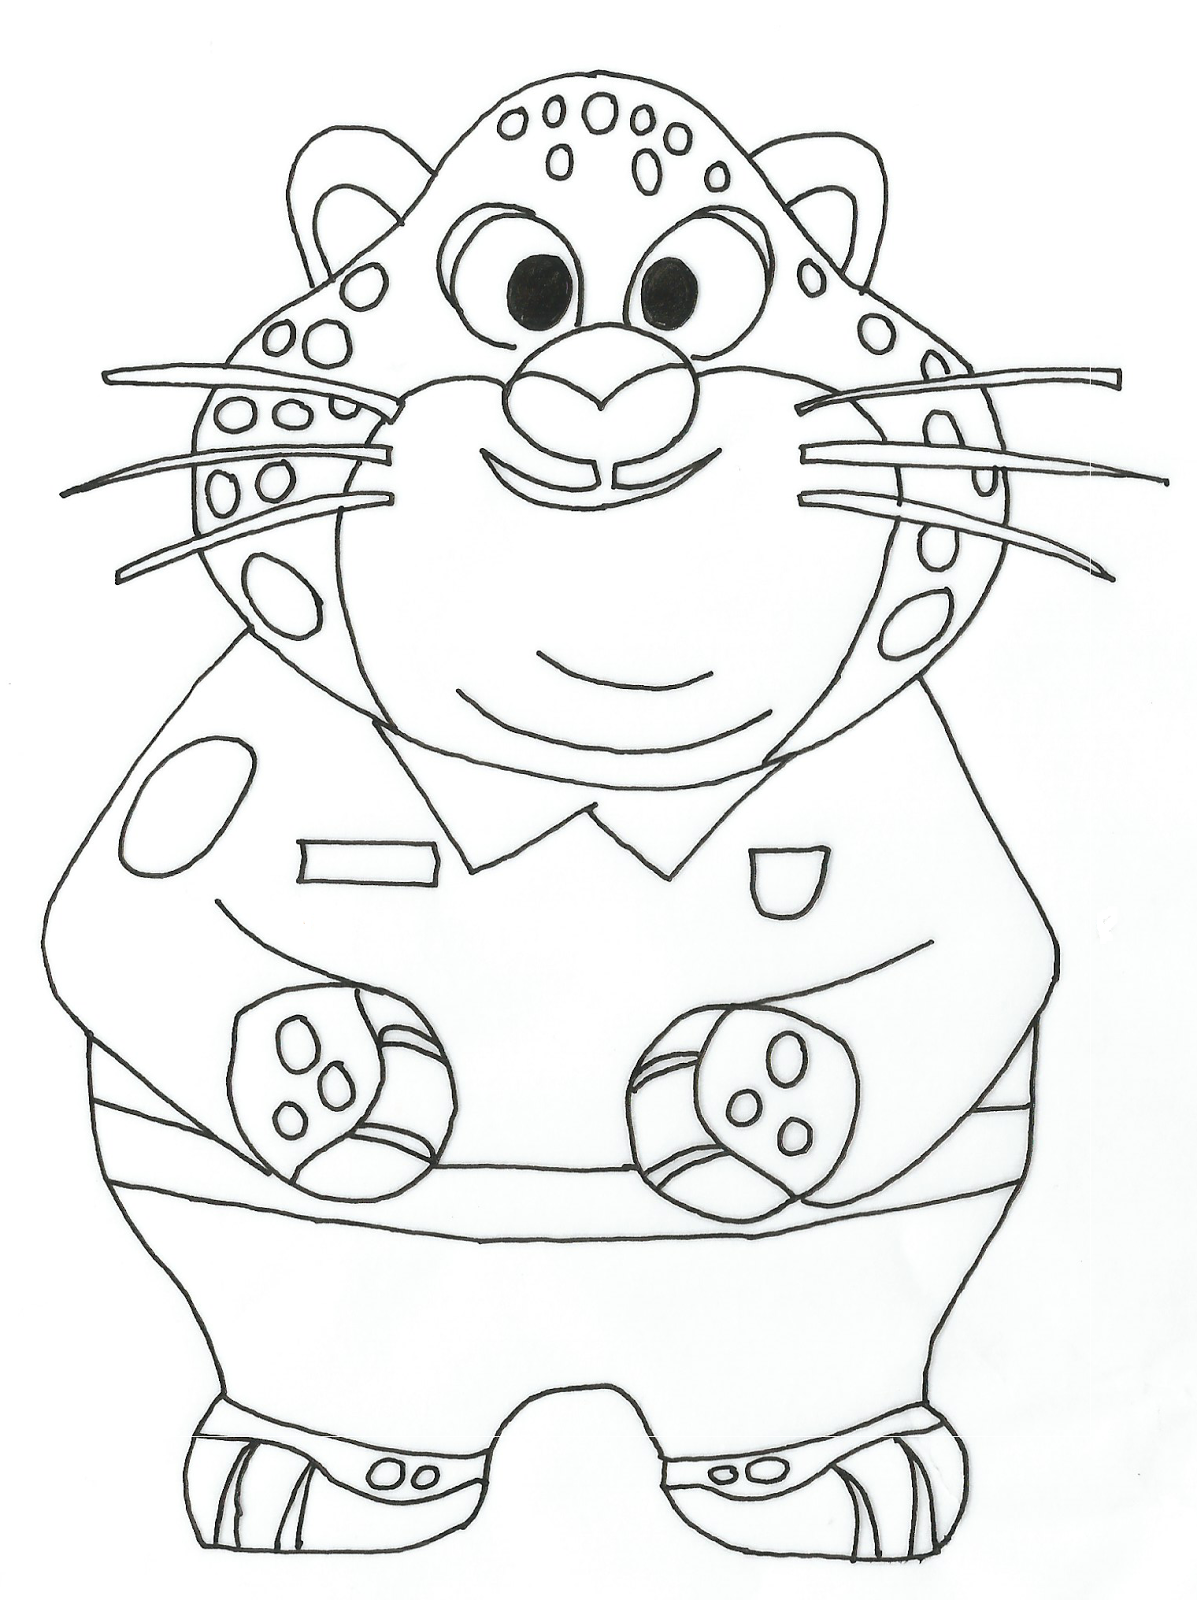 Free Printable Zootopia Coloring Pages Coloring Pages Zootopia